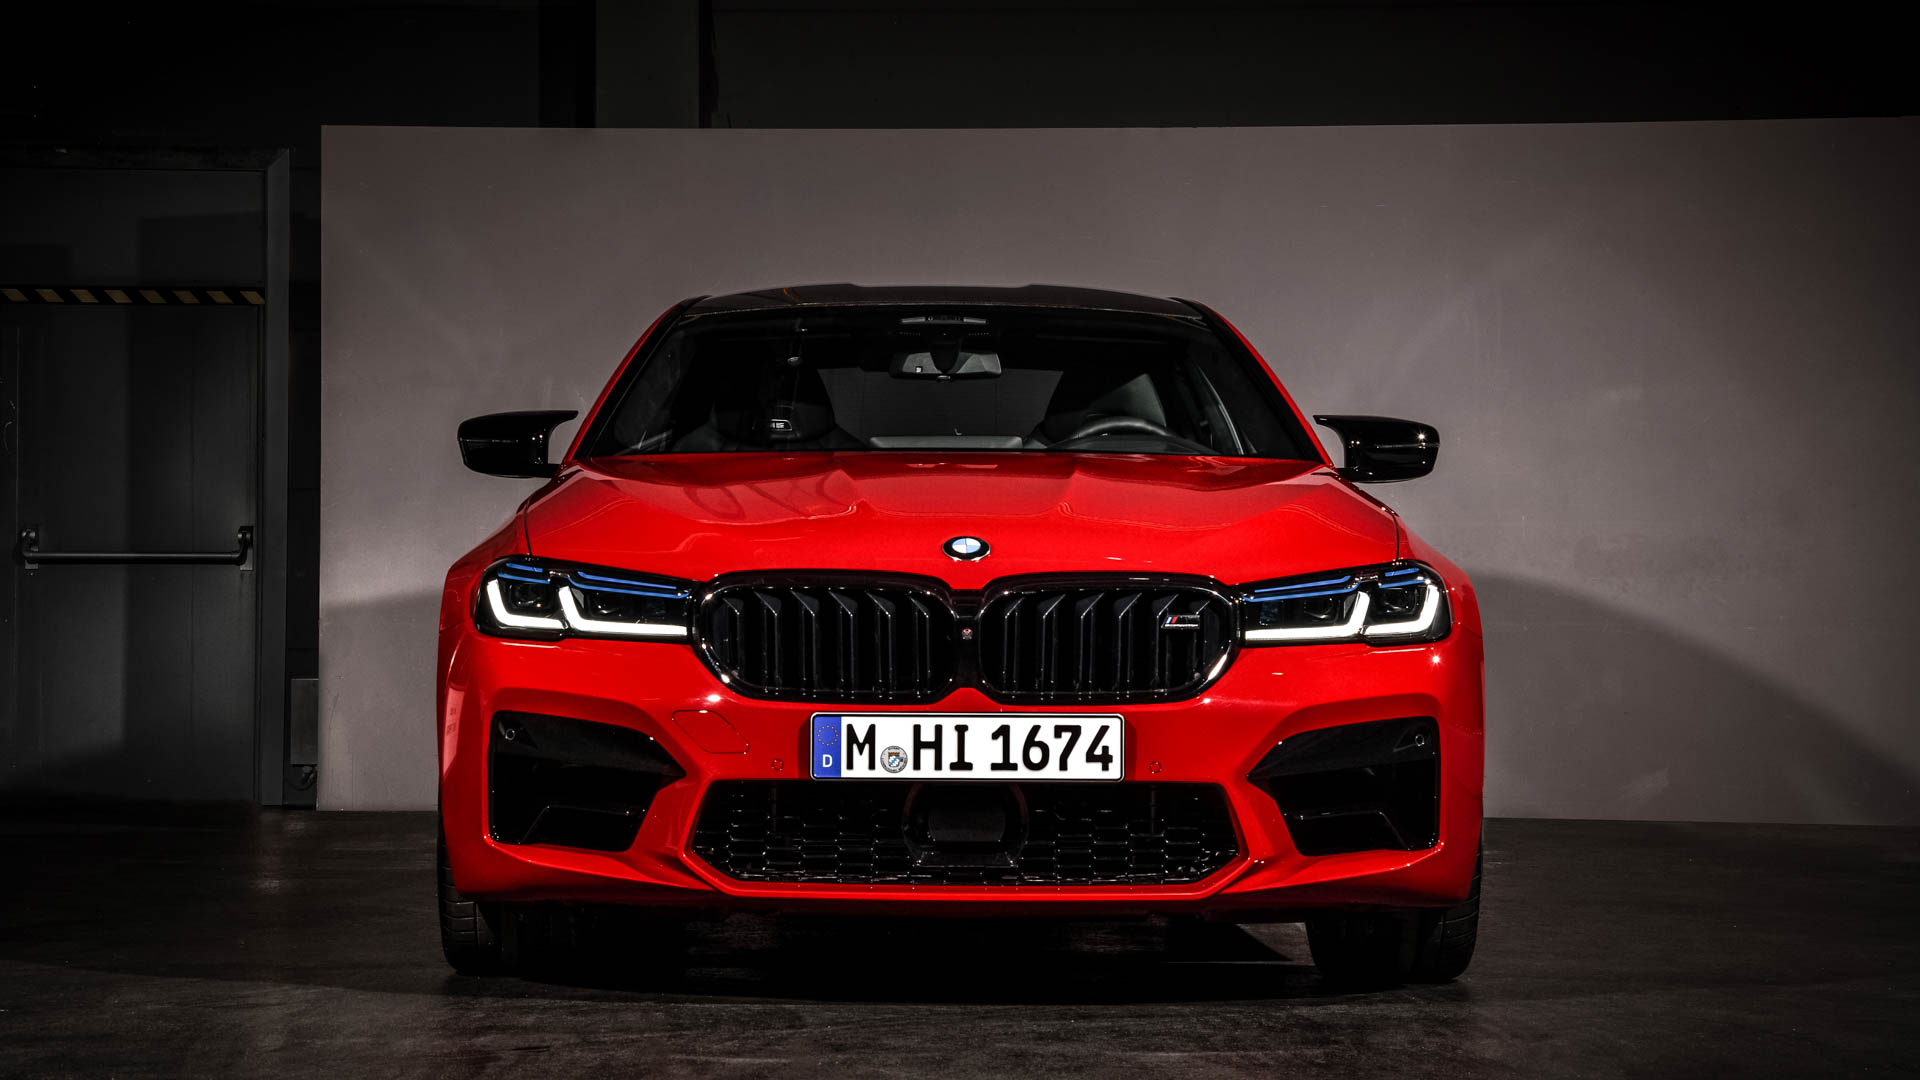 Bmw M5 Longislanddrivers Com Online Source For The Latest Automobile Trends